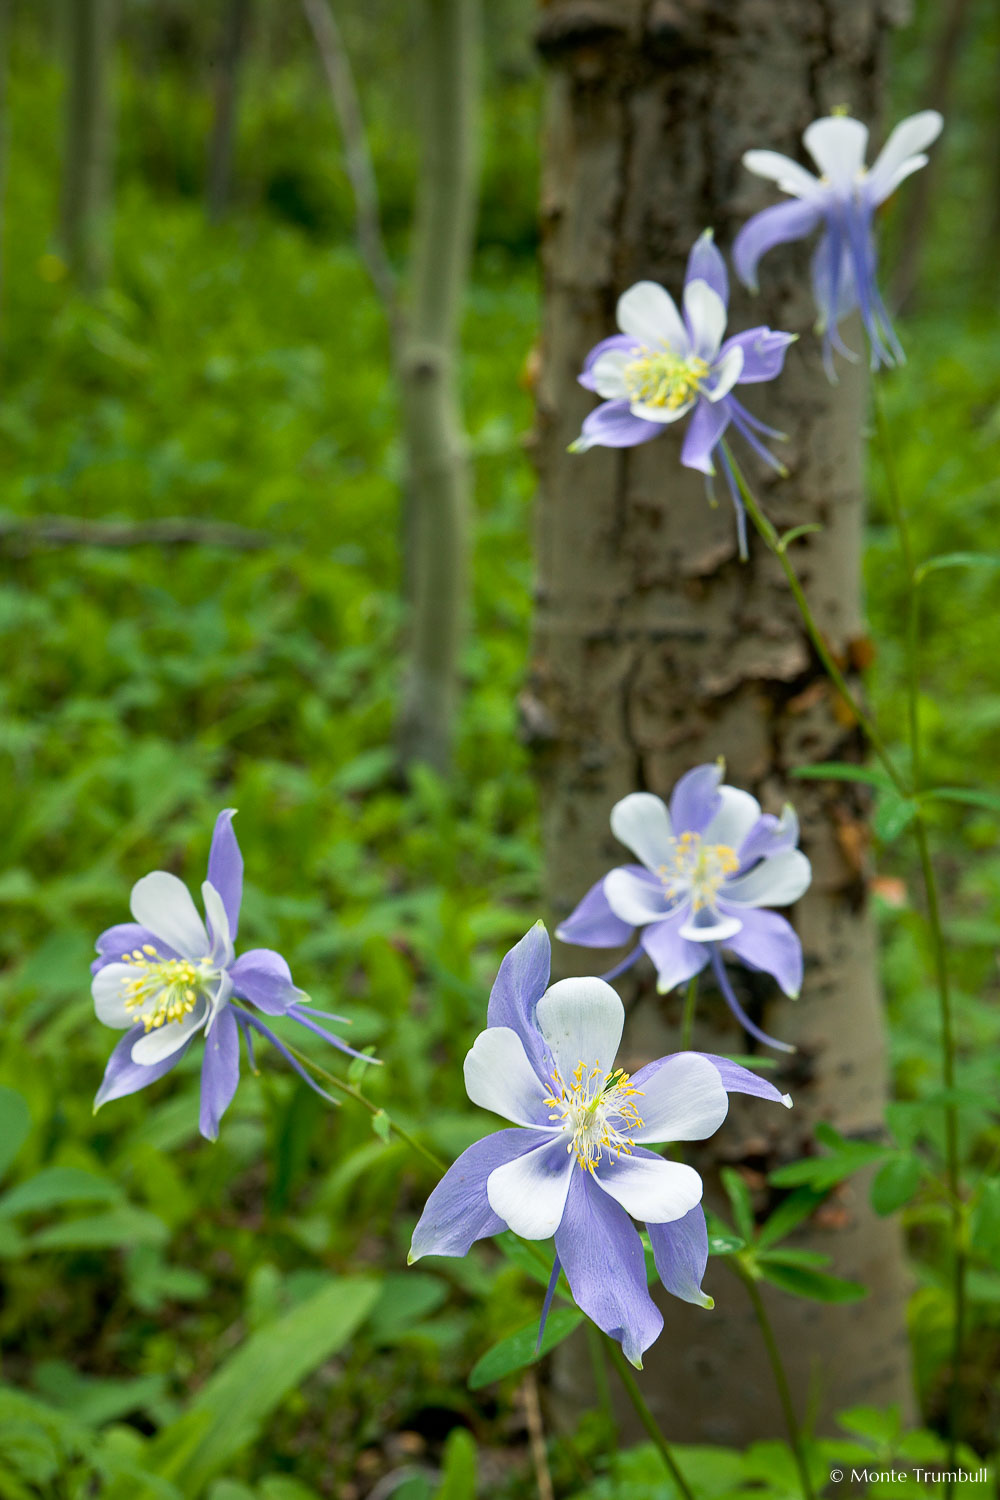 MT-20080716-134511-0078-Edit-Colorado-aspen-trunks-flowers-blue-columbines.jpg